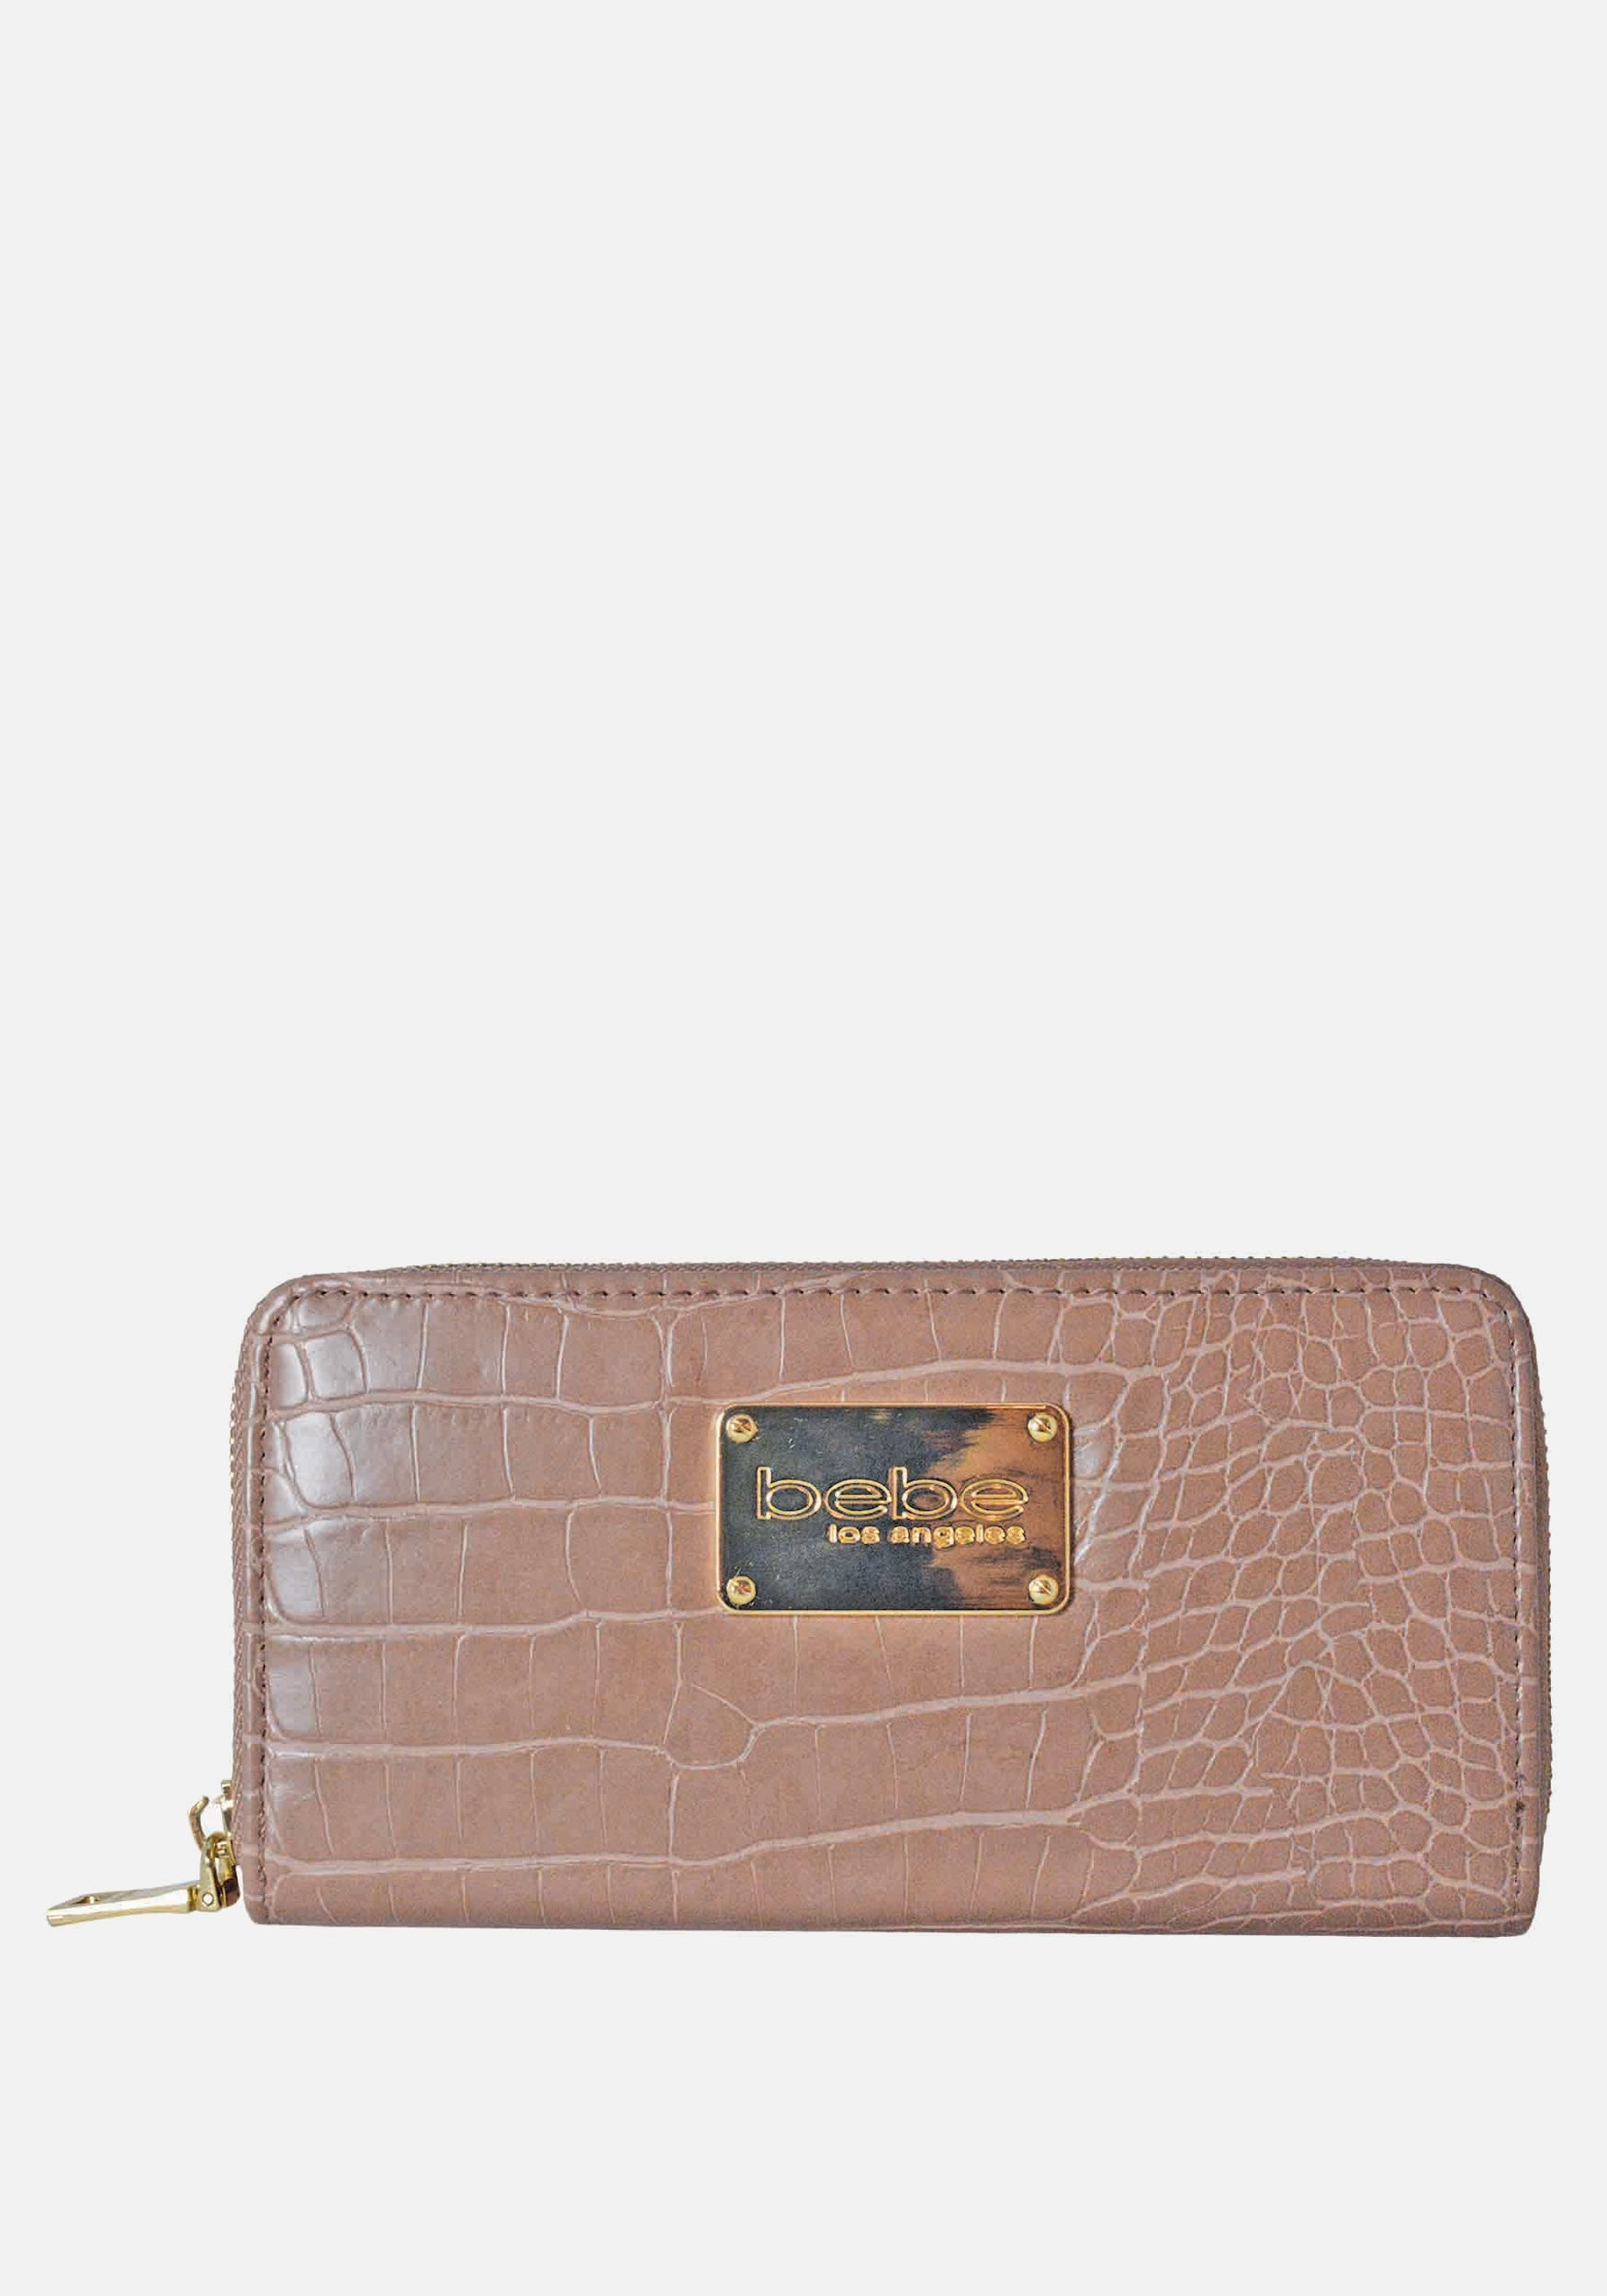 Bebe Women's Natalia Croco Wallet in Mink Polyester